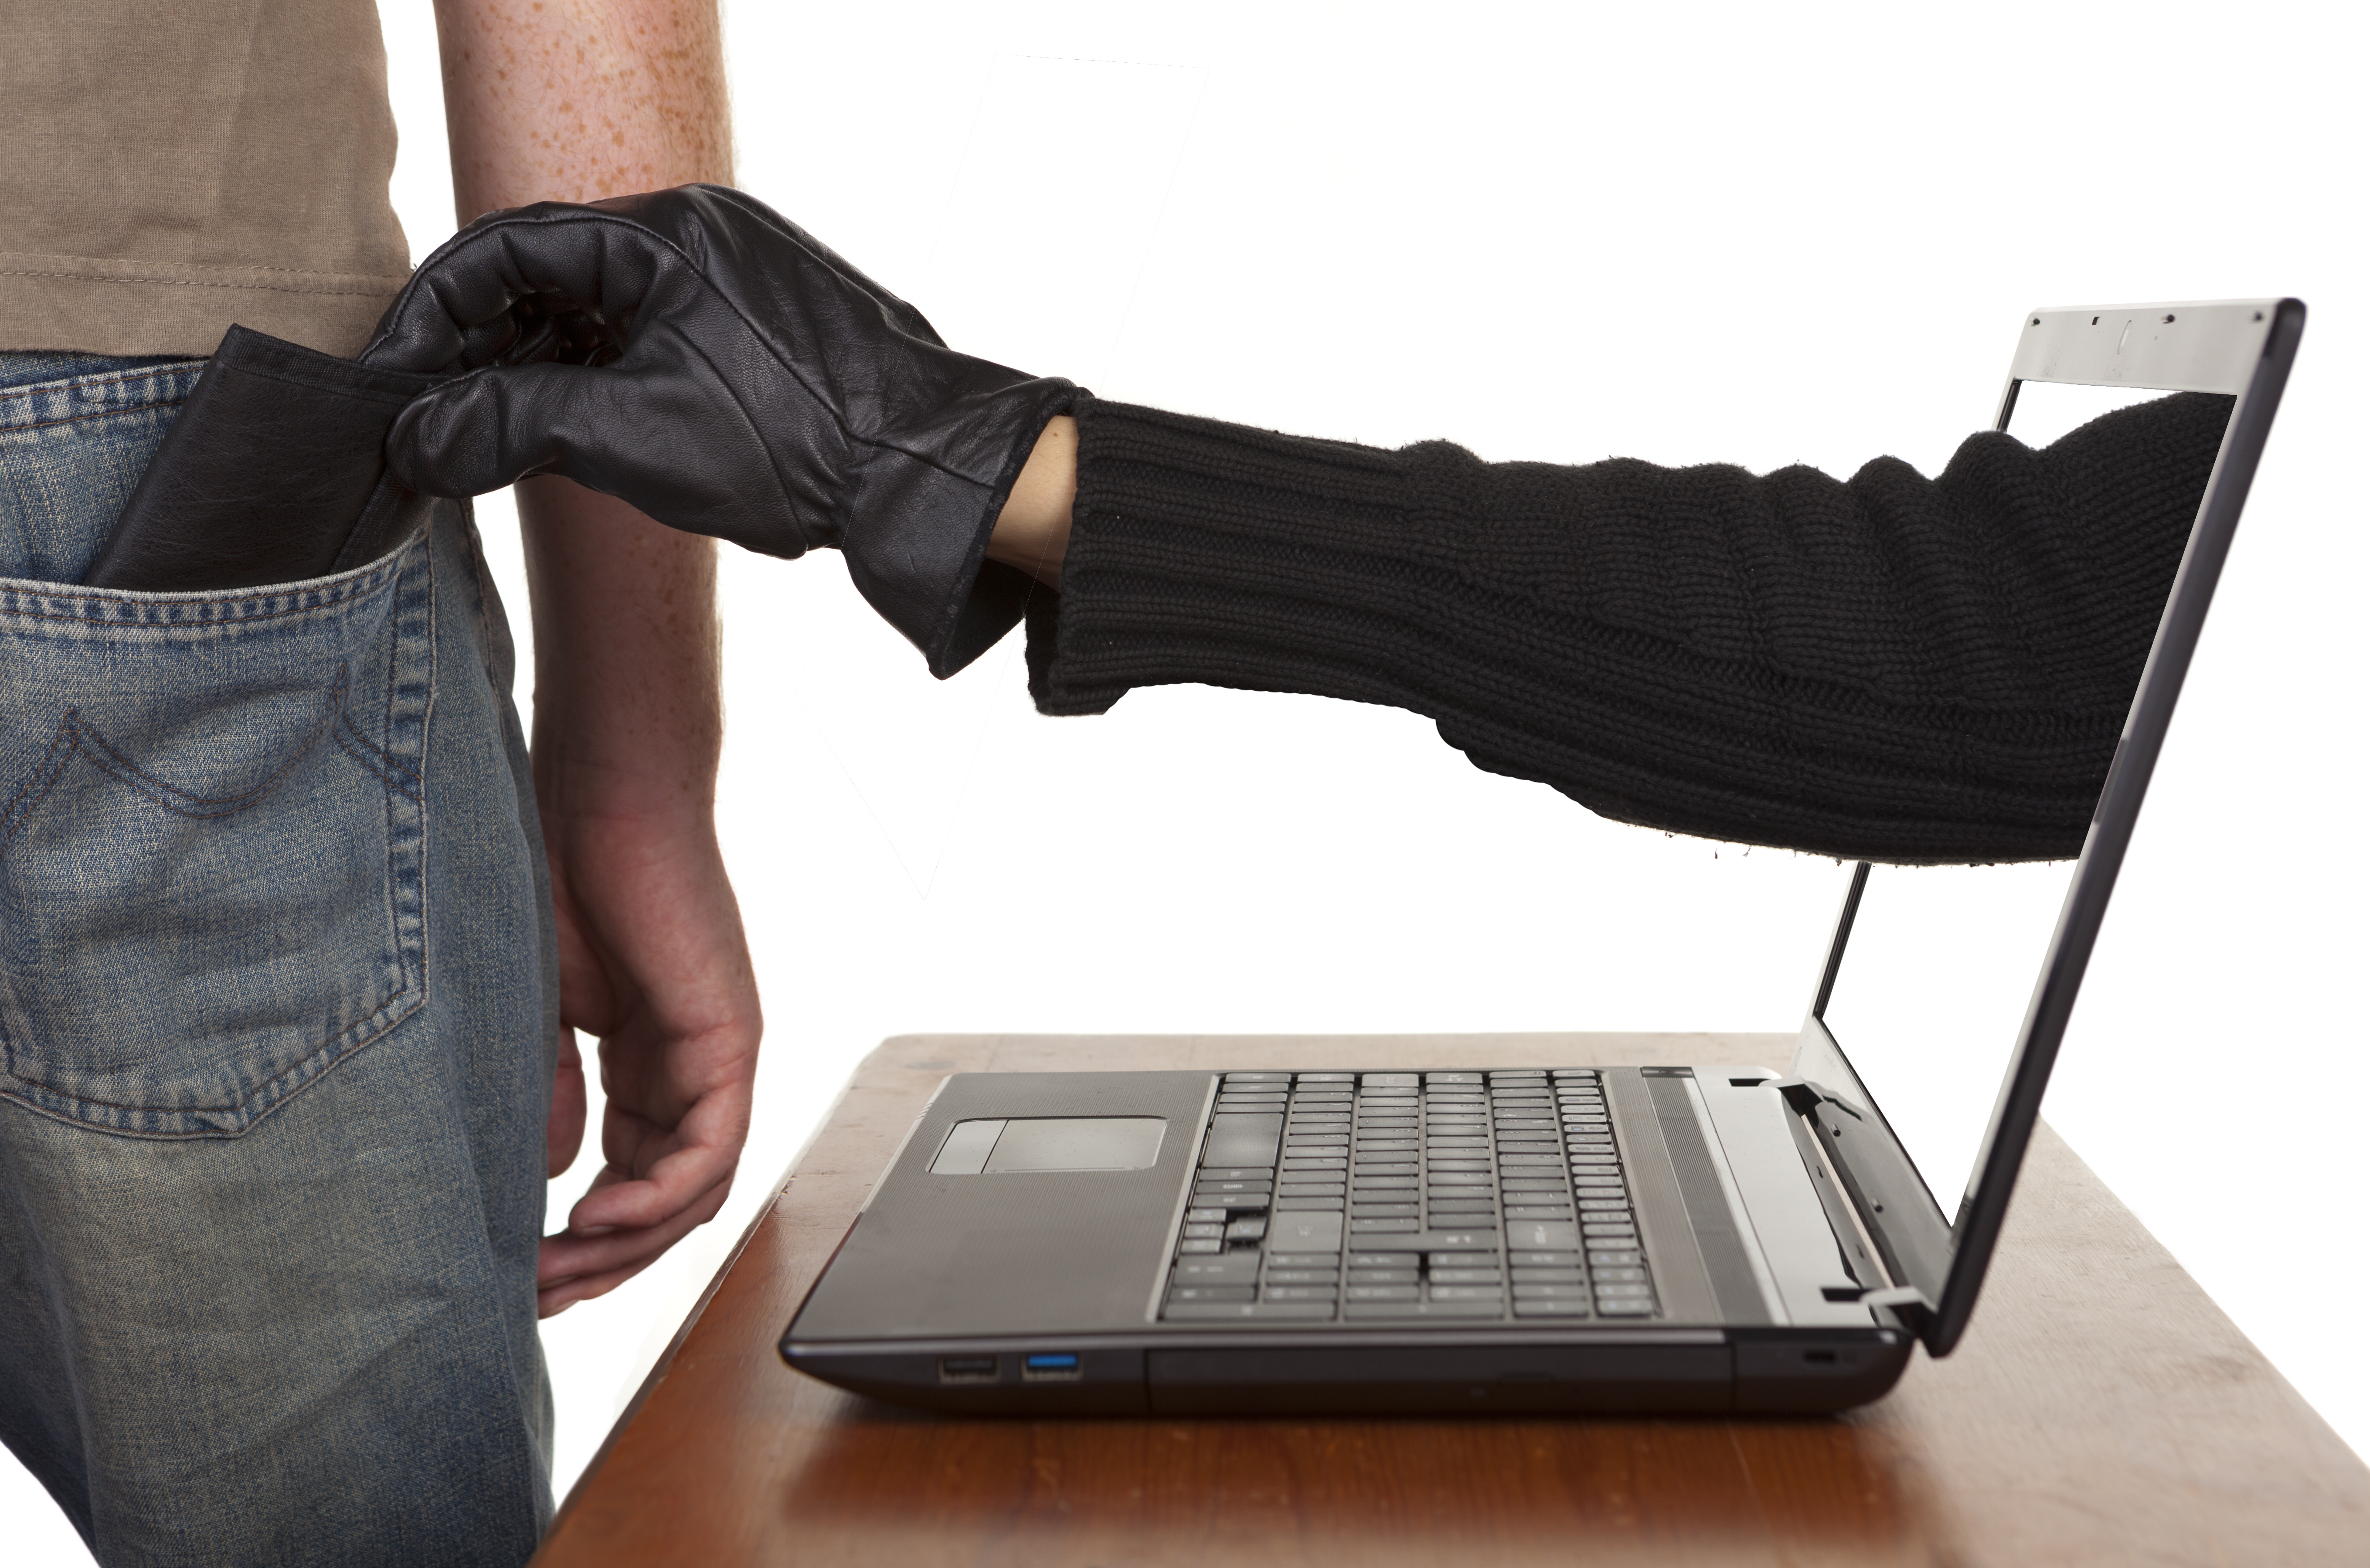 Cyber crime remains the biggest fear for UK companies